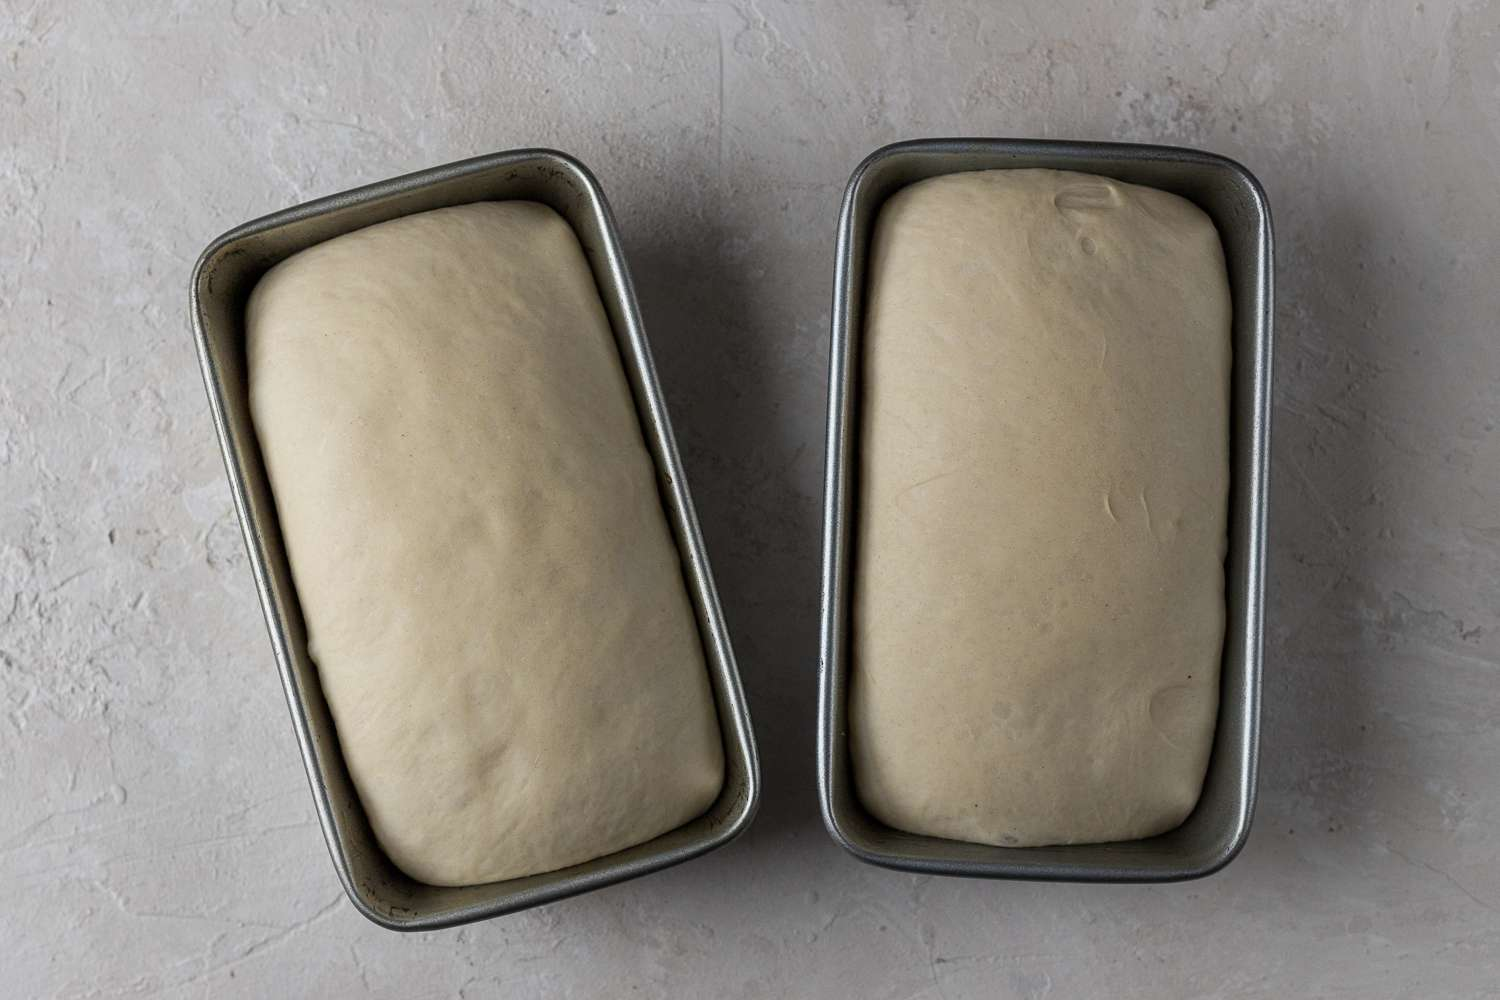 dough rising in loaf pans